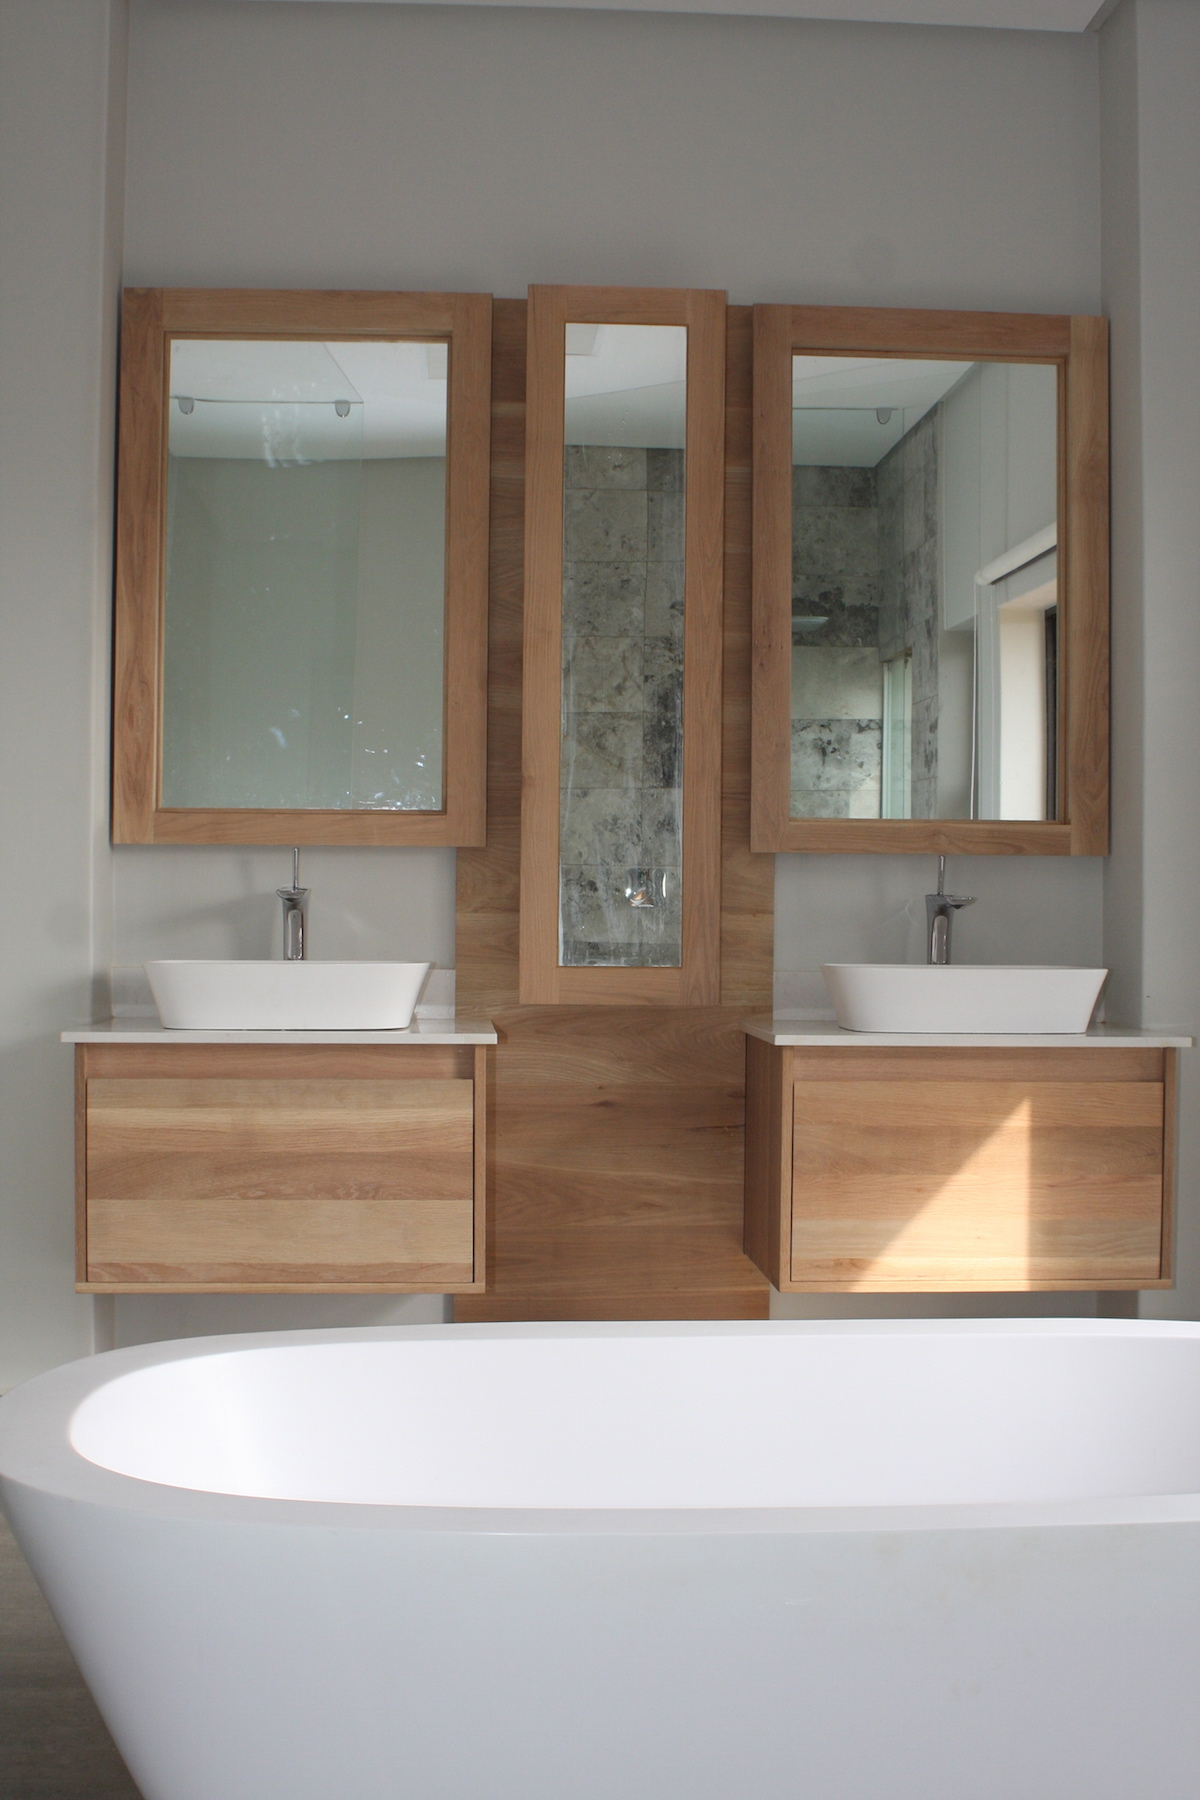 The Goodwood Co Bathroom Vanity And Mirrors Custom Sized